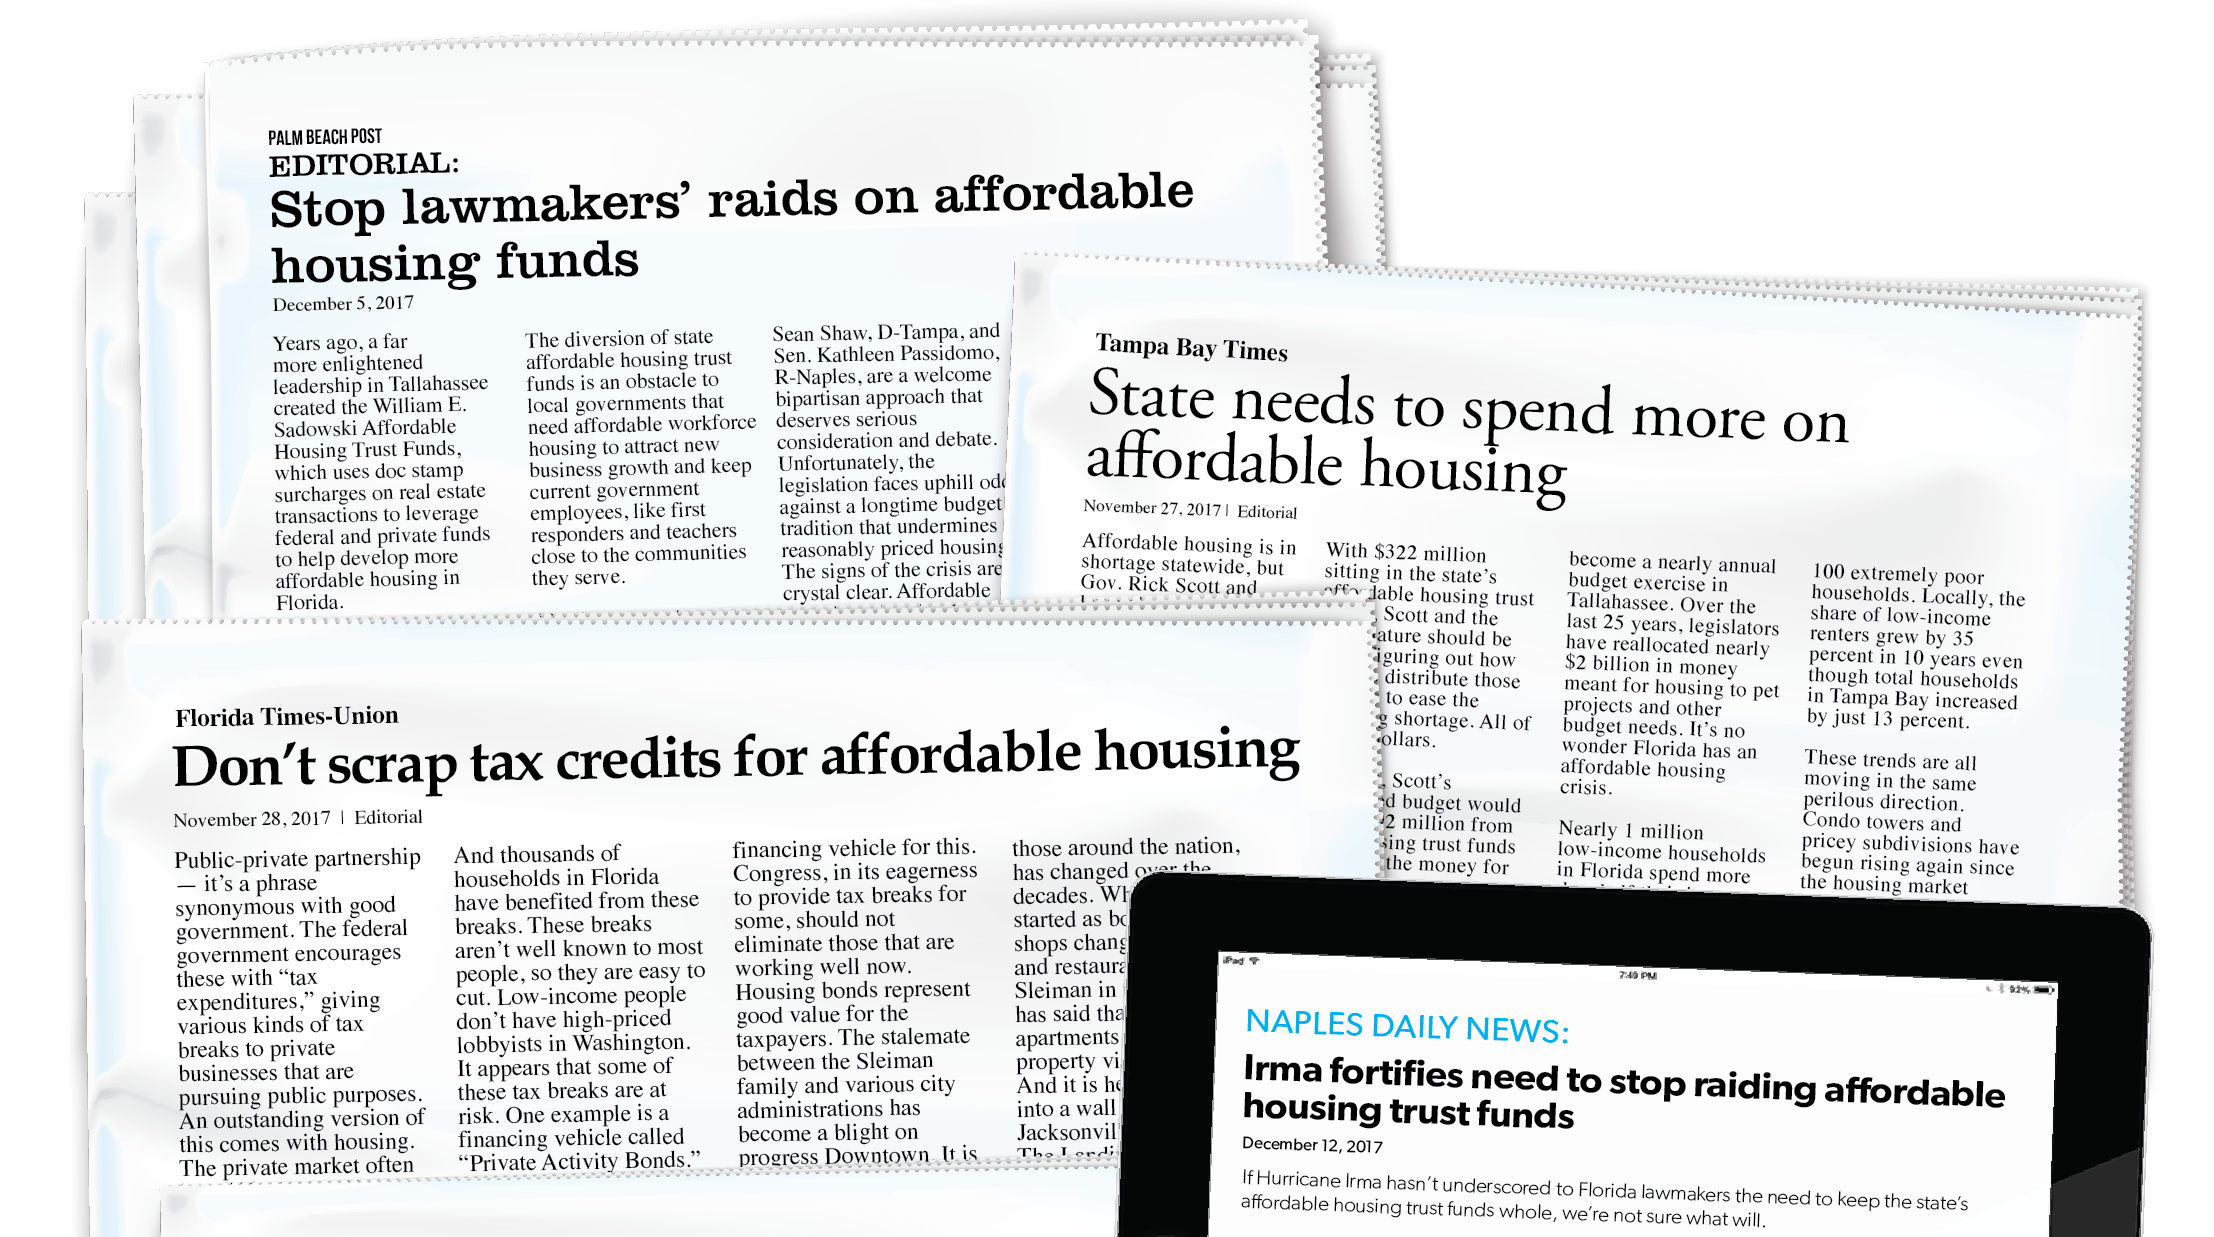 Image of newspaper headlines related to affordable housing.